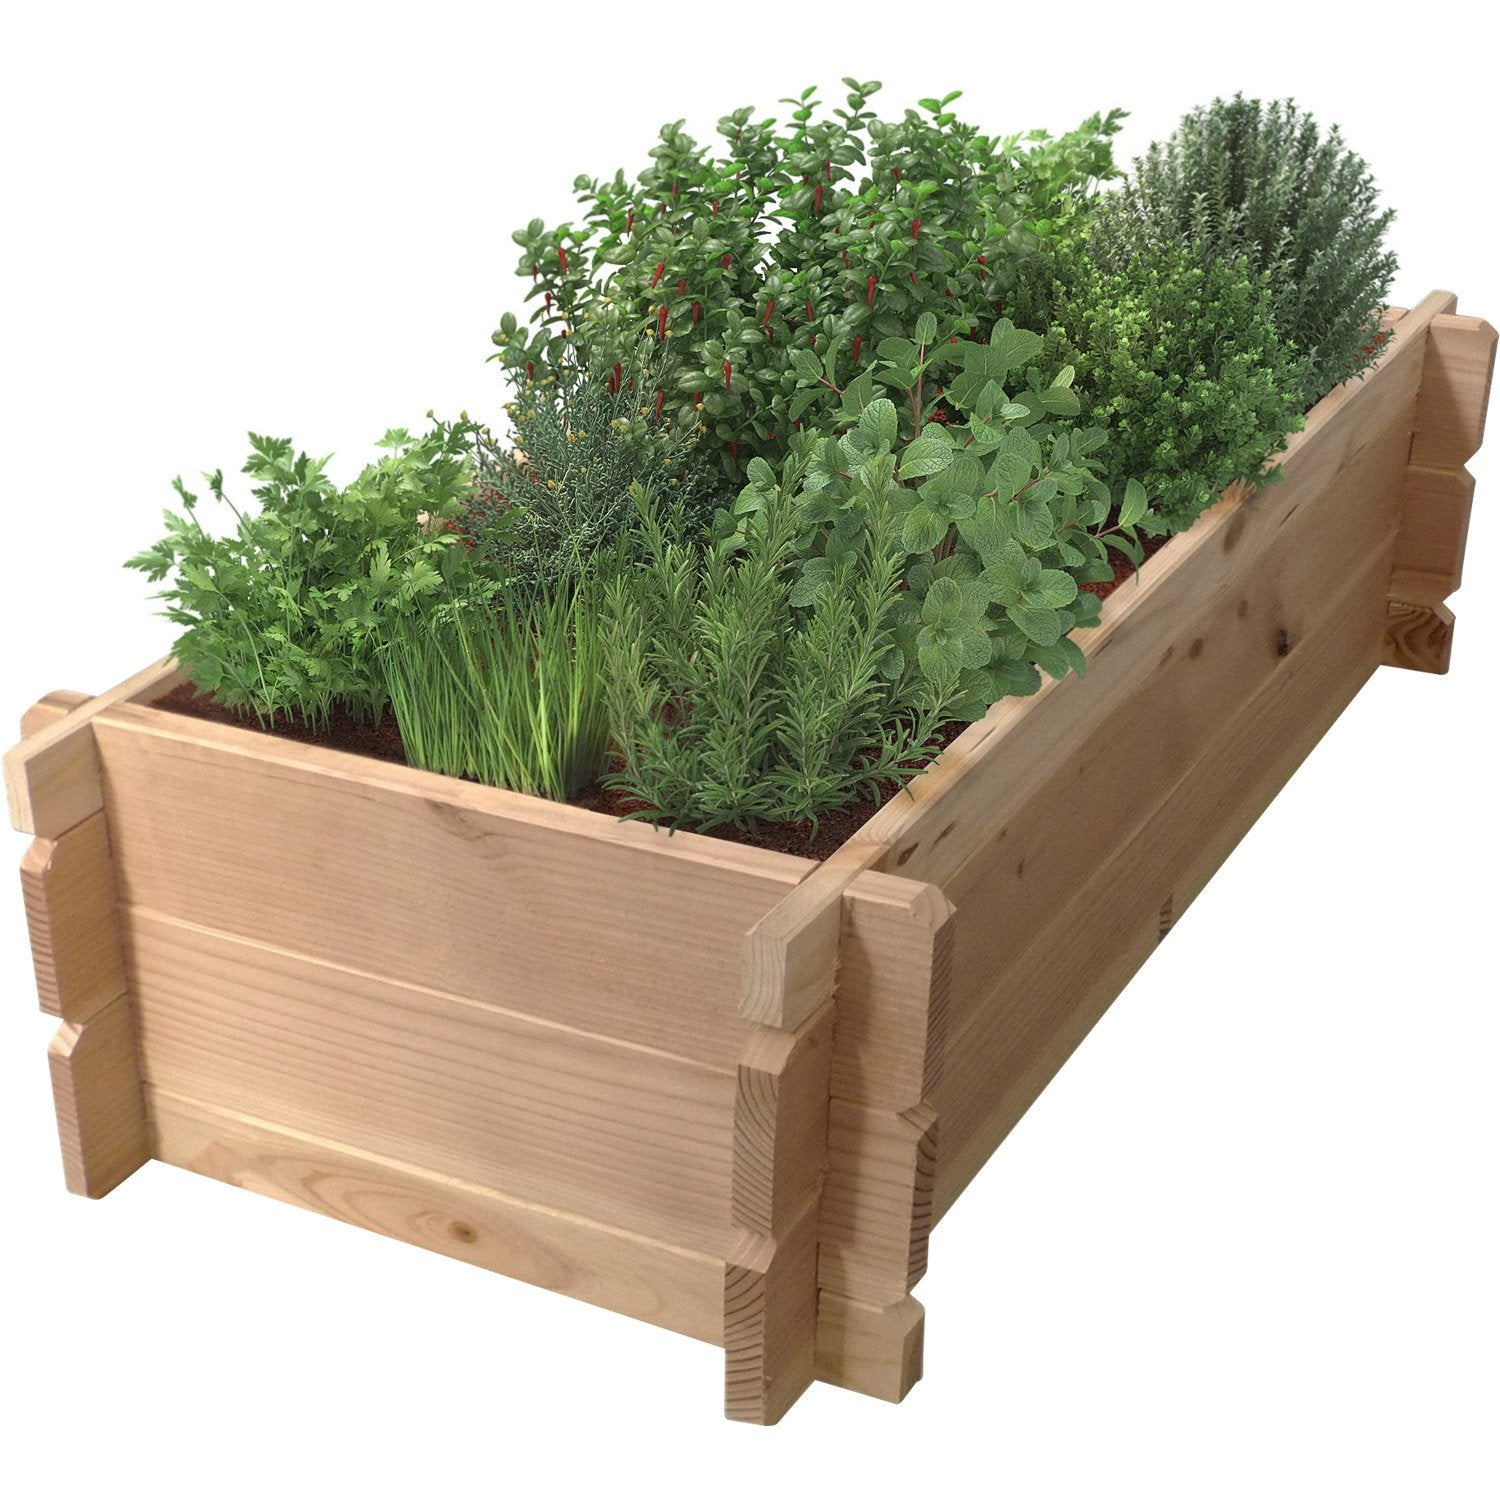 Carr potager geolia capucine naturel x x for Carre jardin